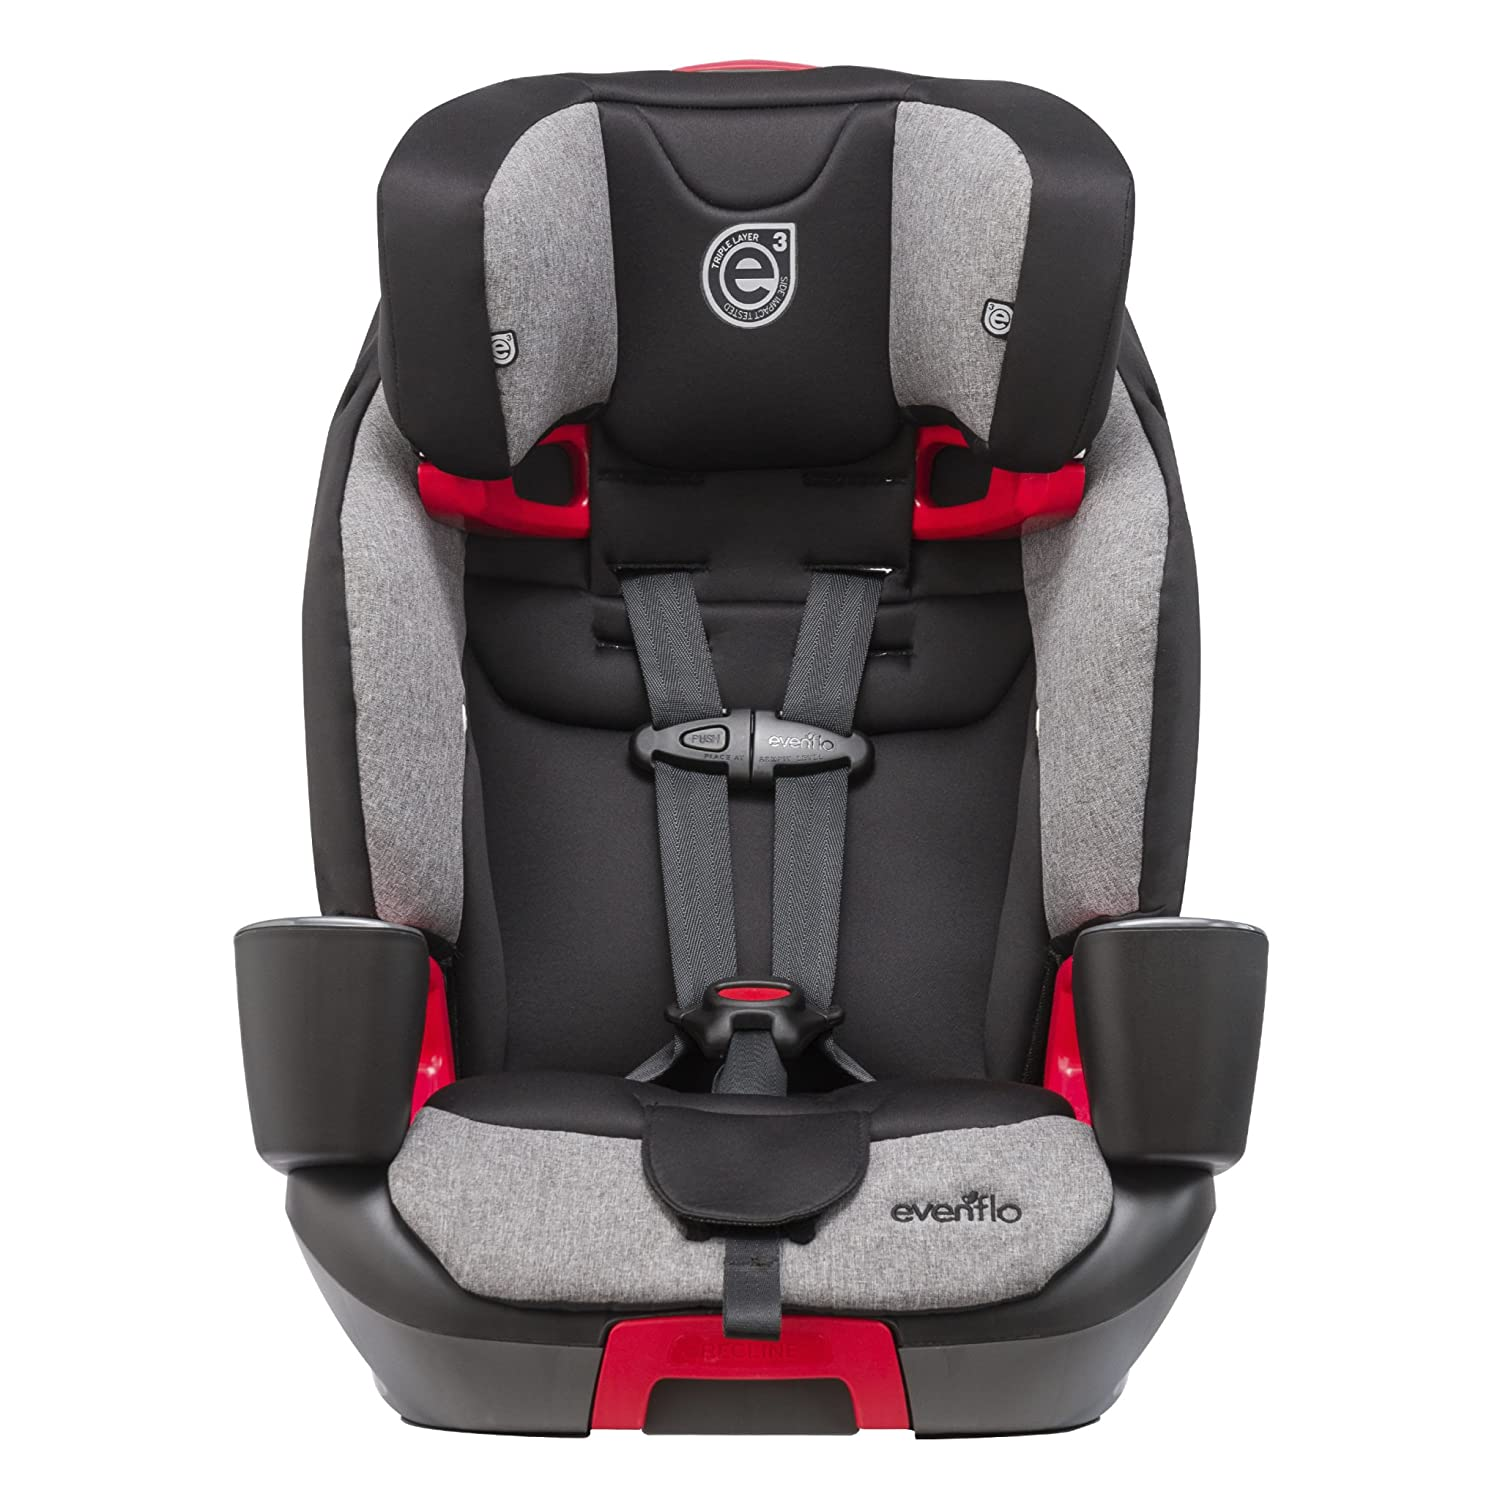 Evenflo Transitions 3-in-1 Combination Booster Seat, Legacy 34421029